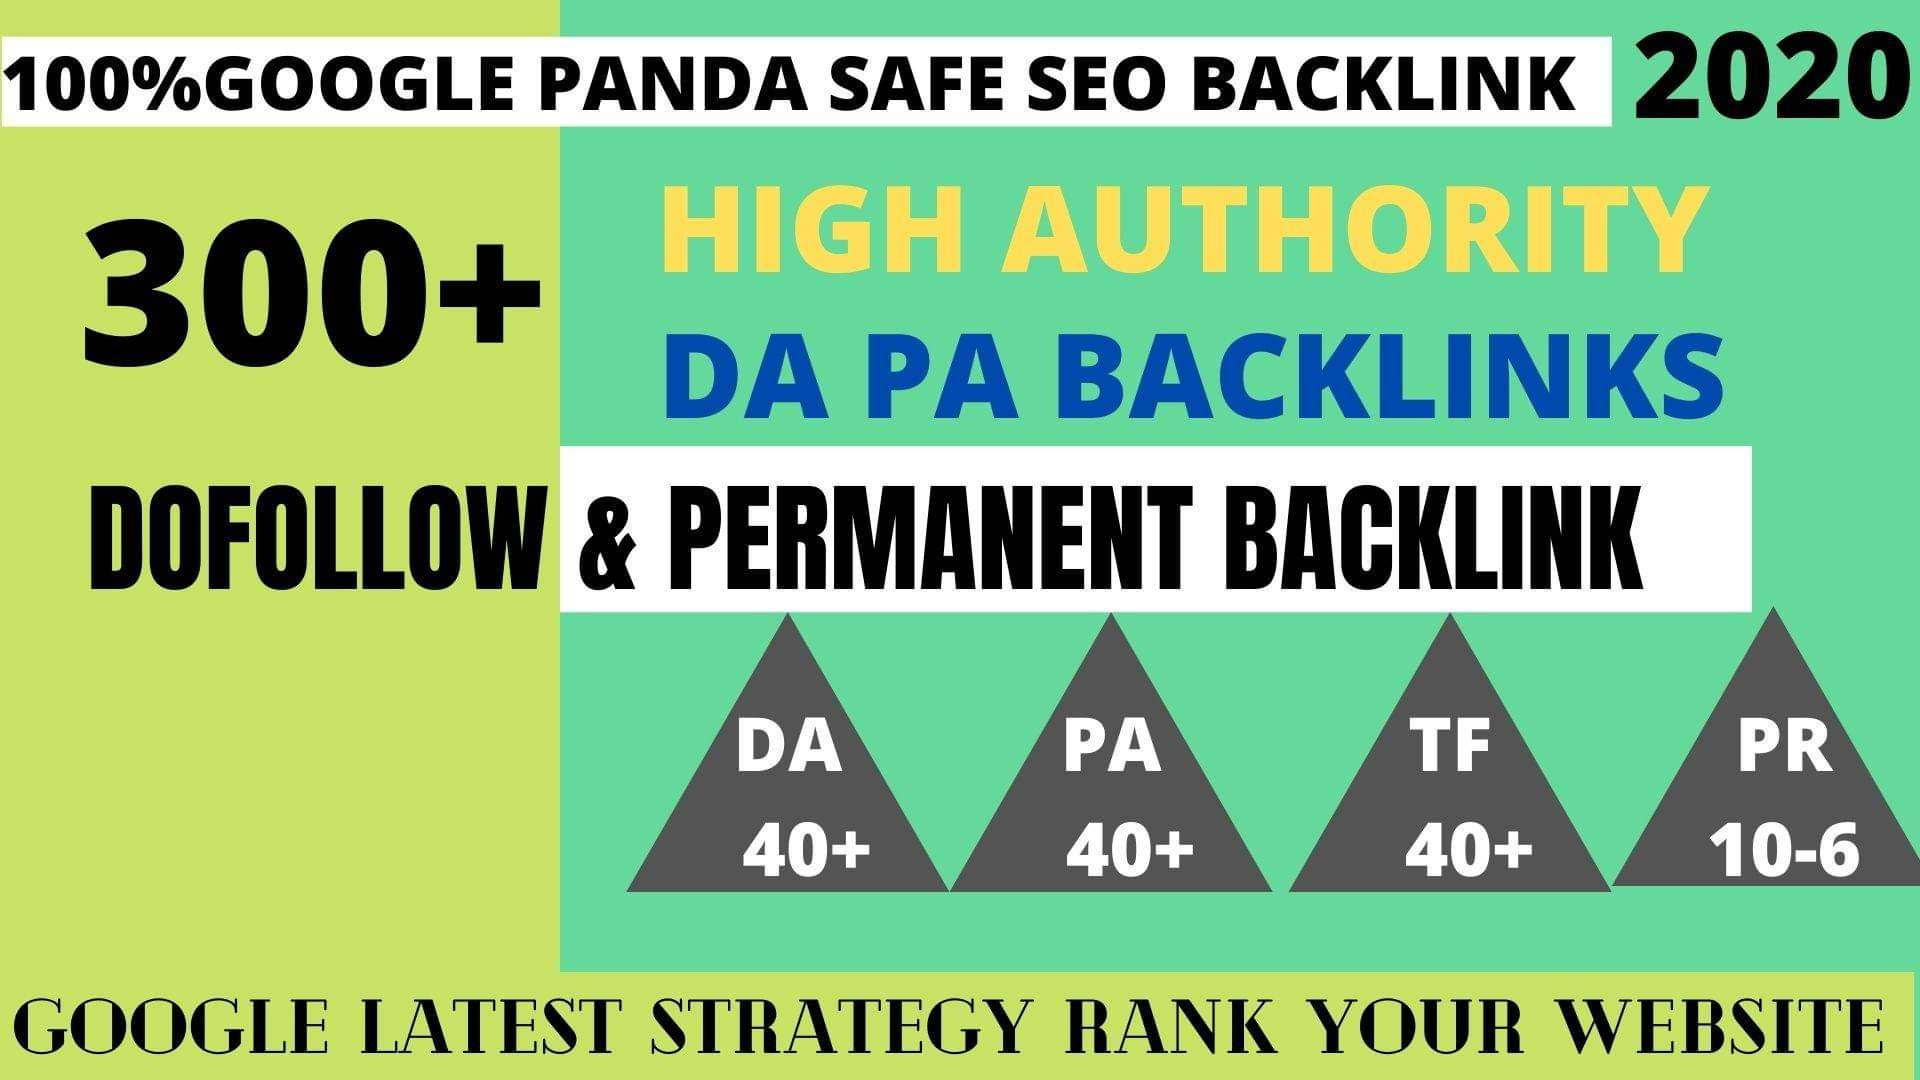 Get Powerfull 300 parmanent Backlink and PBN with High DA 40+ PA35+ on your Homepage with unique web